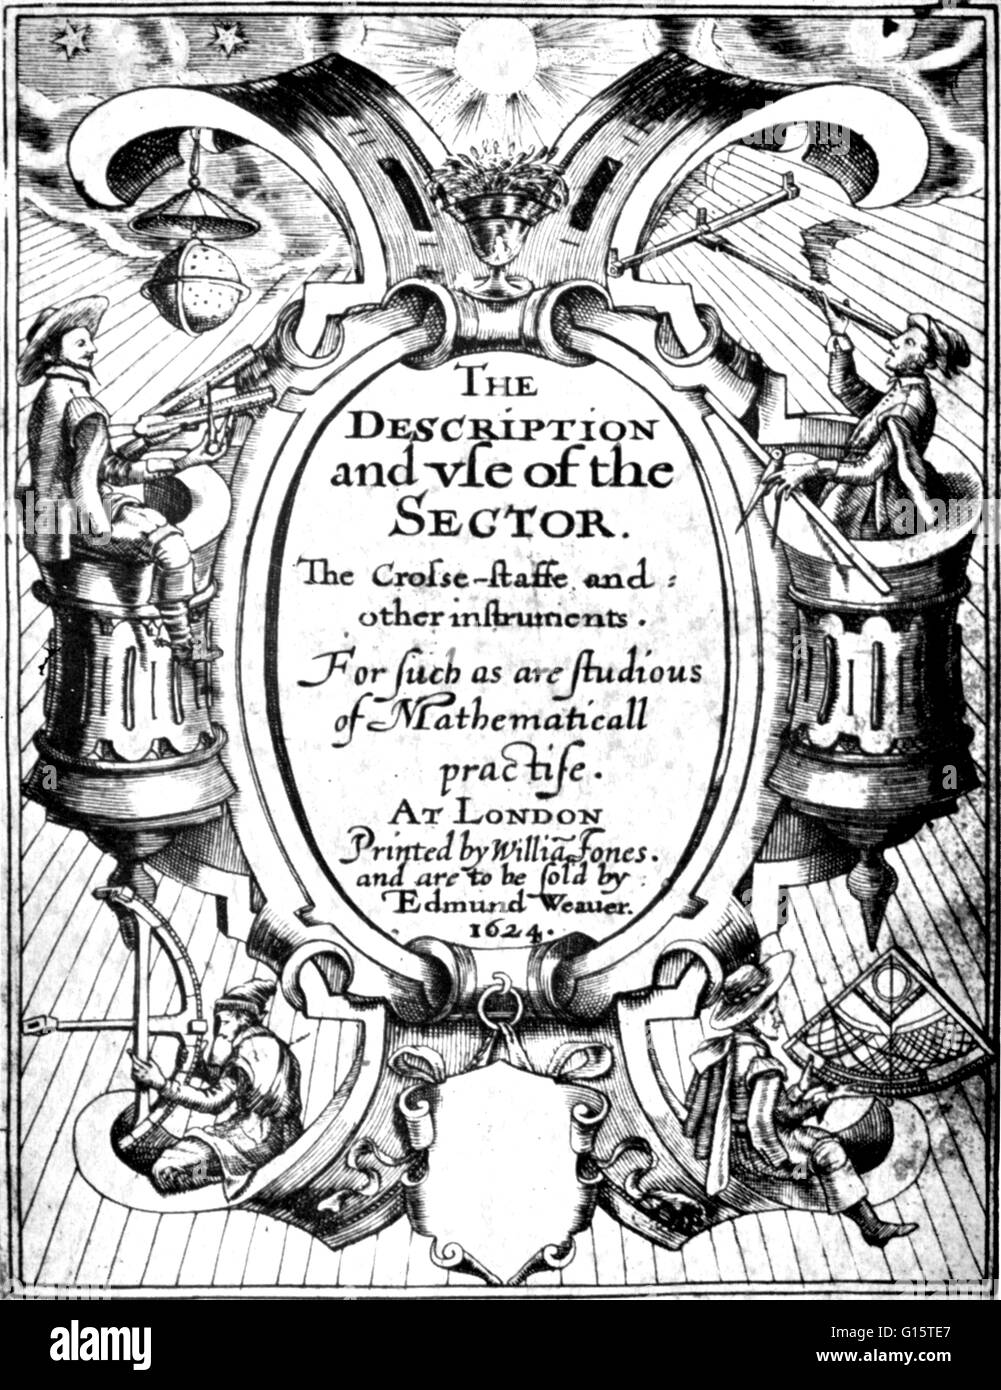 Edmund Gunter was a Welsh mathematician. In 1624 he published a collection of his mathematical works entitled: 'The - Stock Image